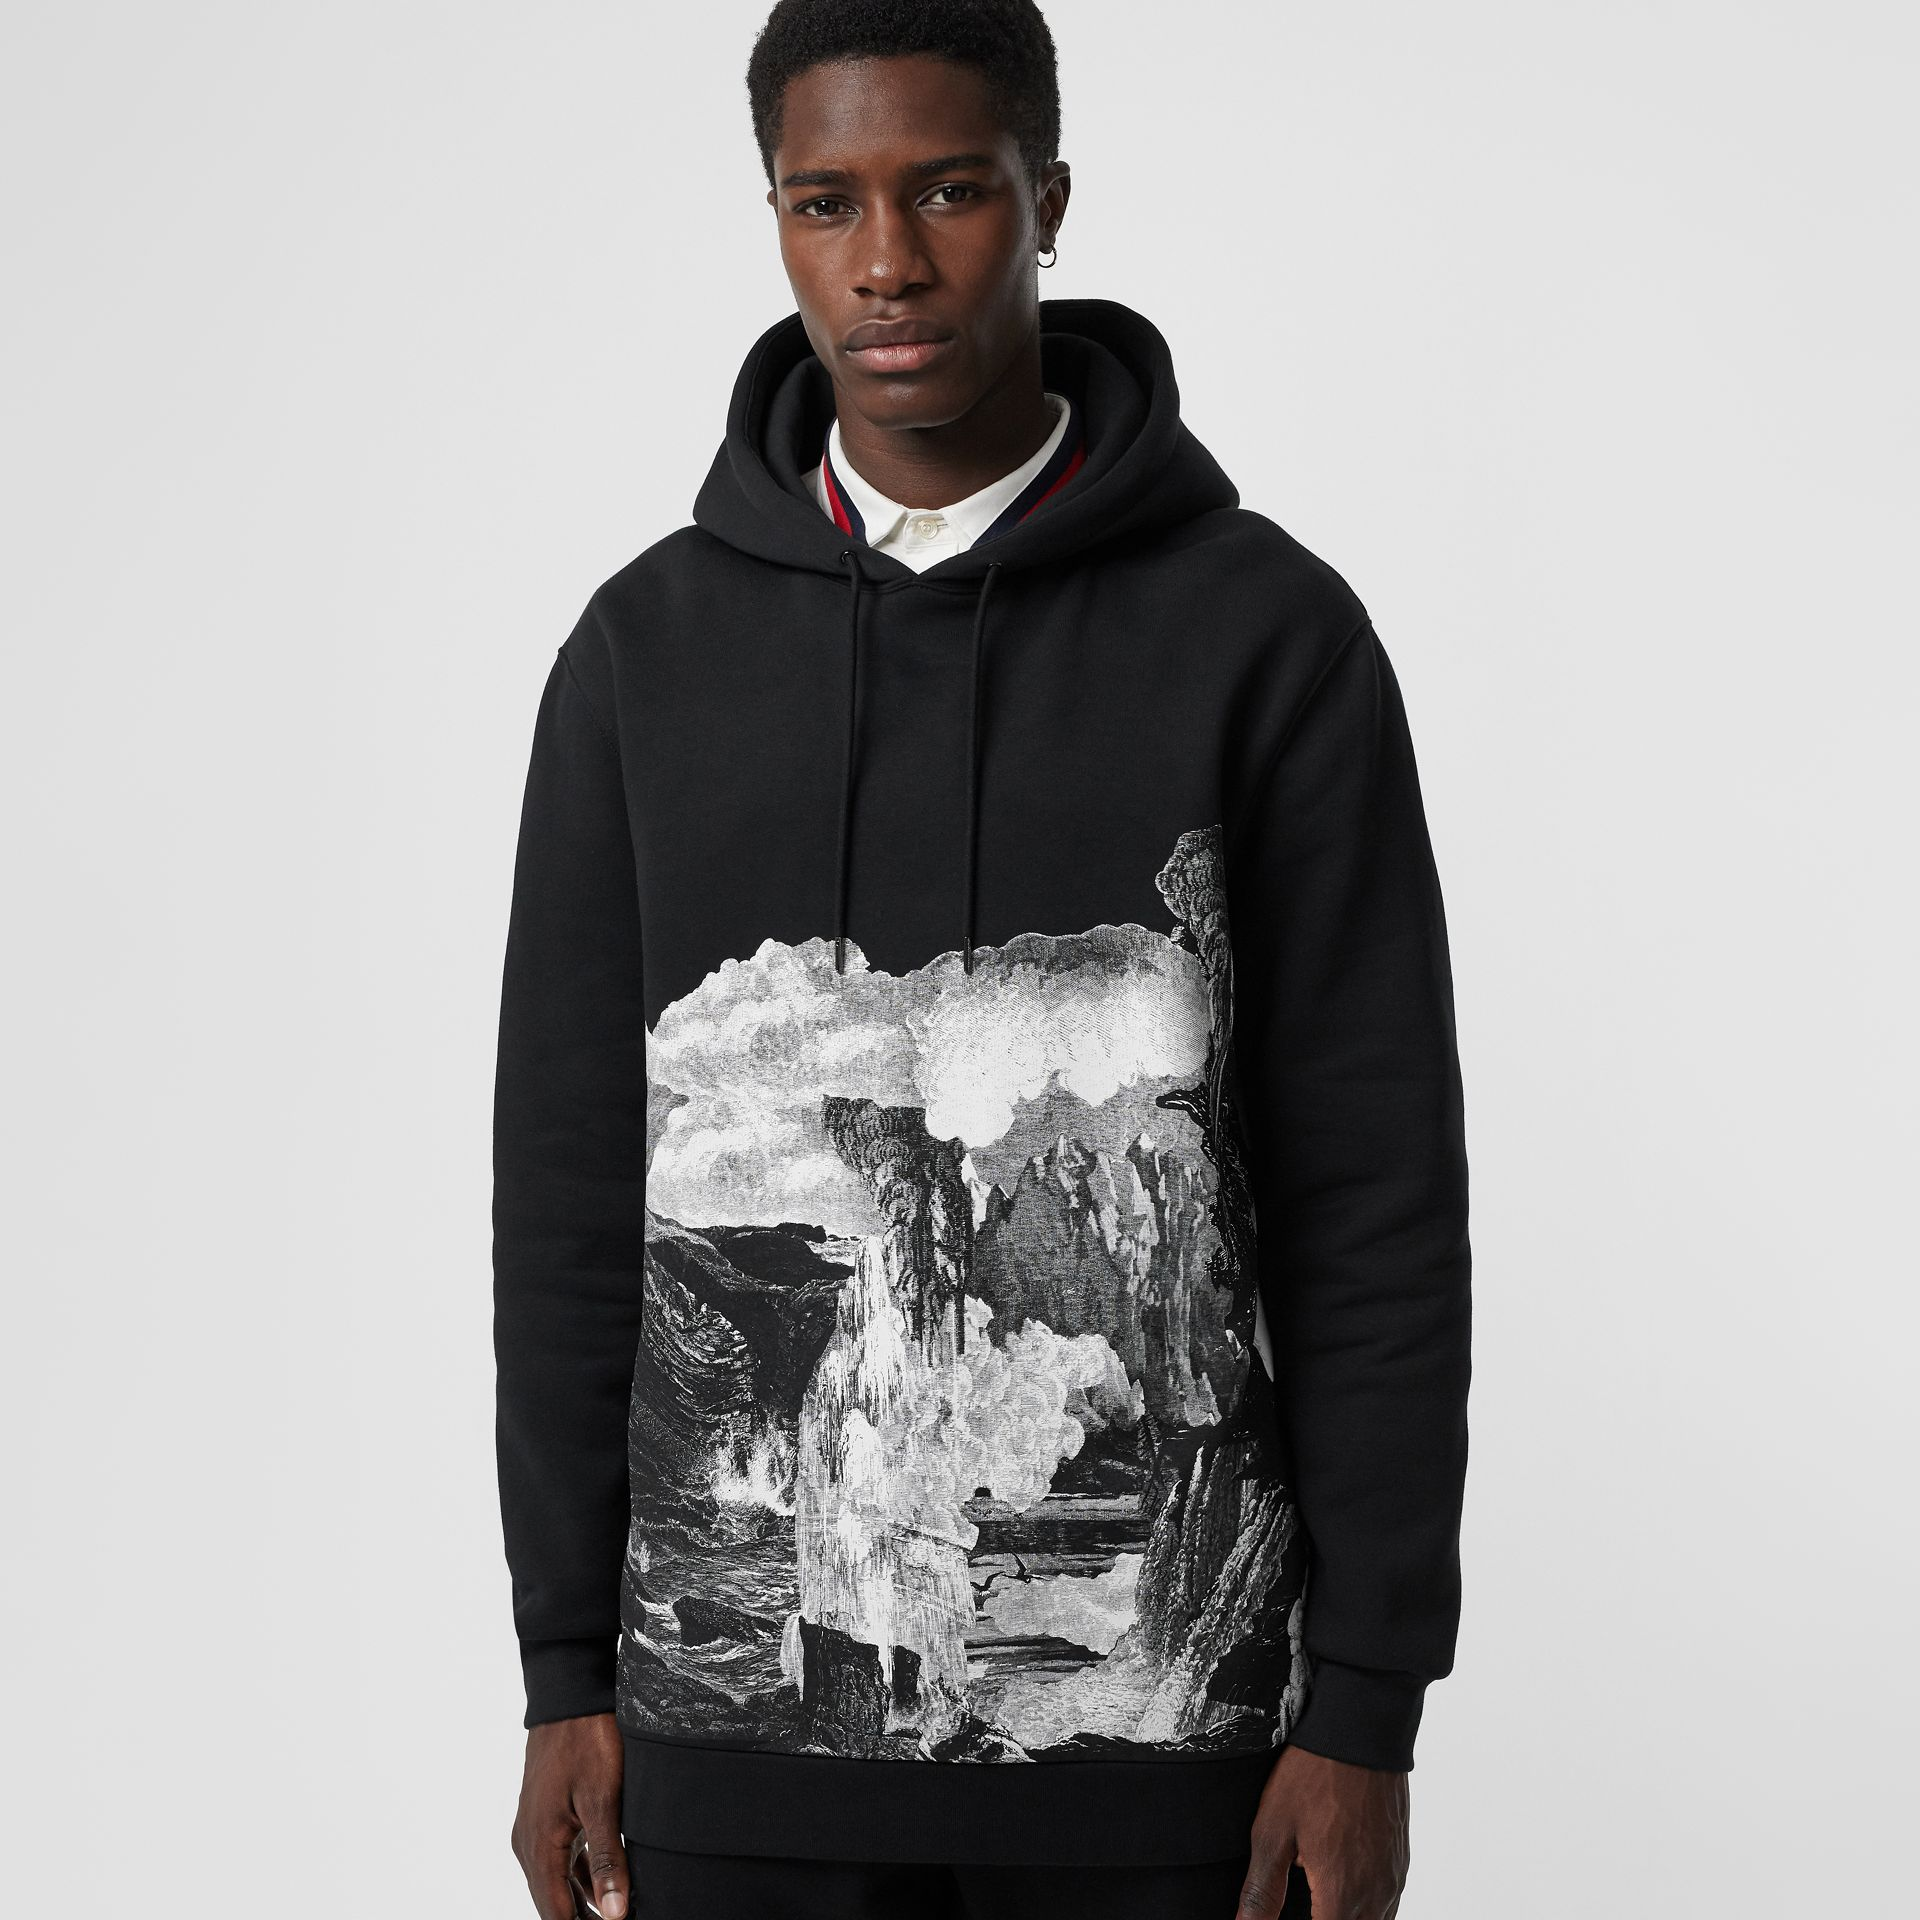 Dreamscape Print Cotton Blend Hoodie in Black - Men | Burberry - gallery image 4